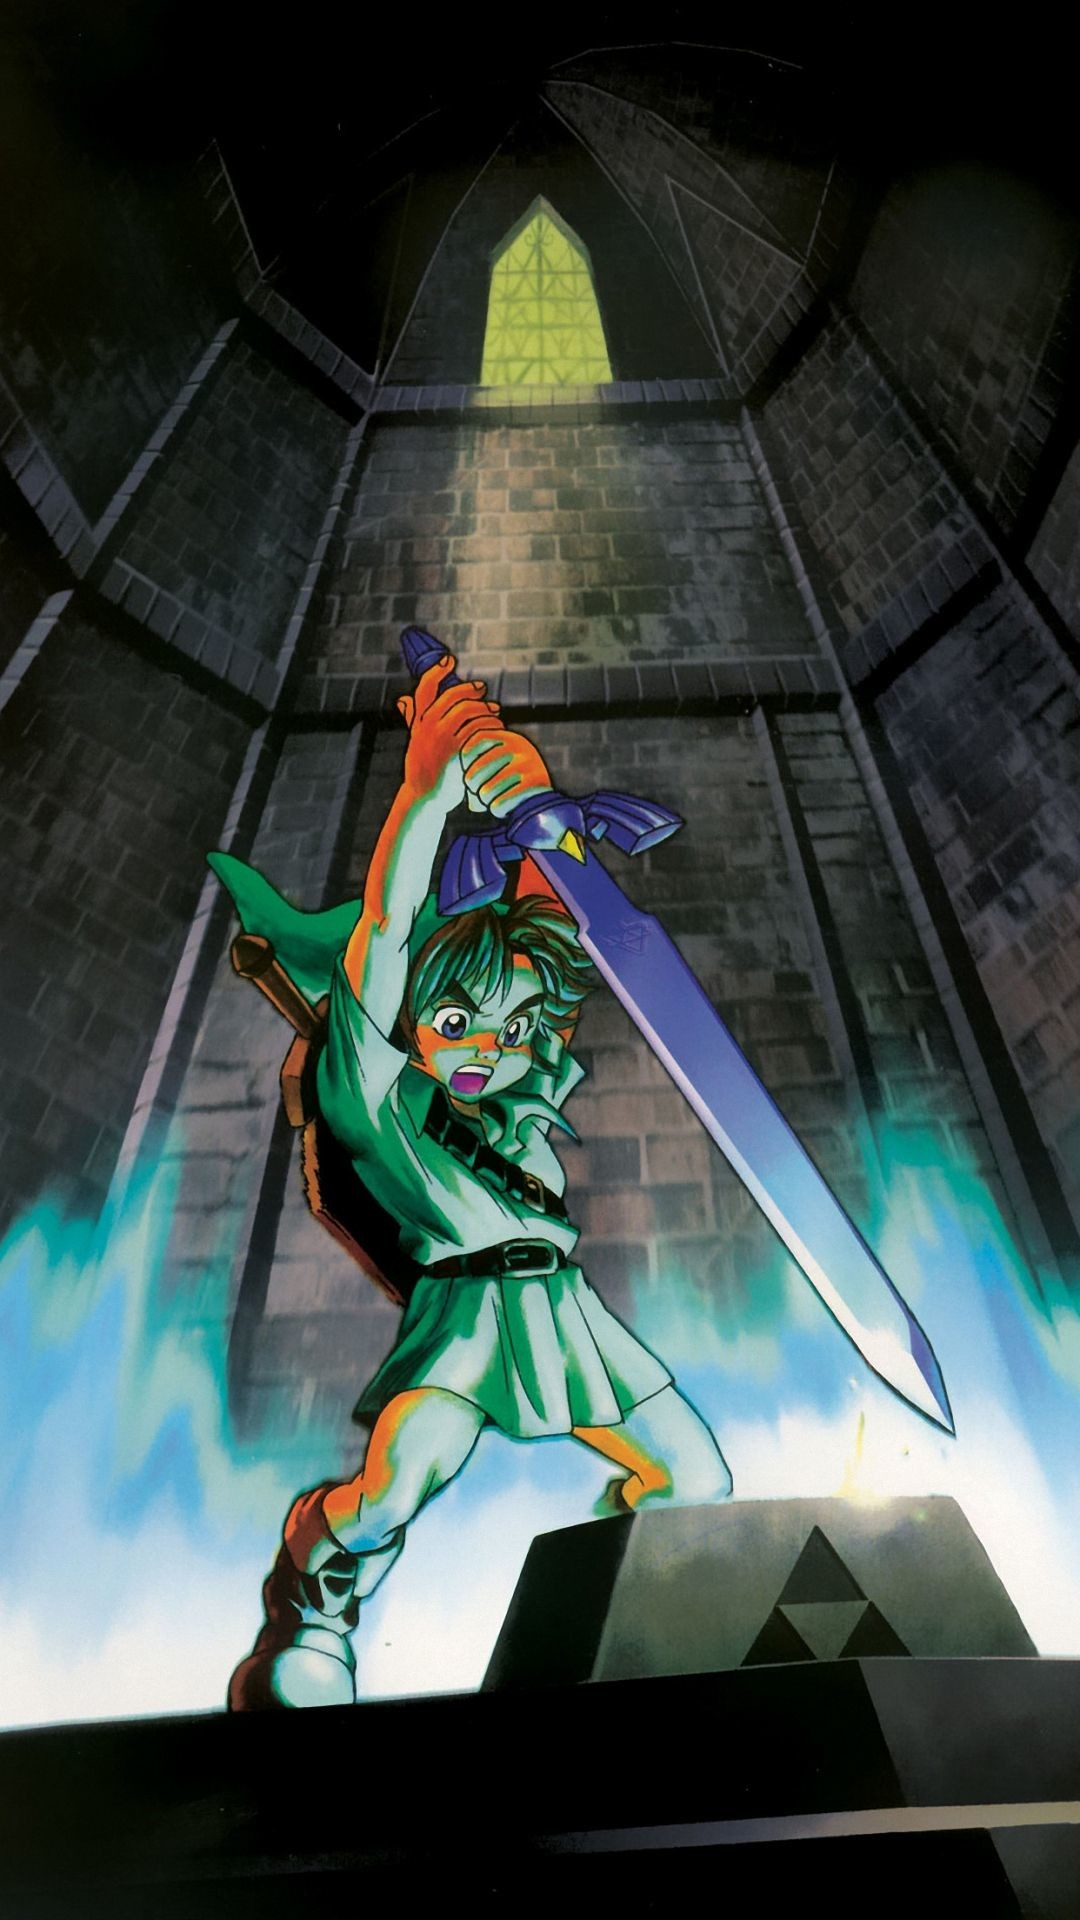 Res: 1080x1920, The best Legend of Zelda wallpapers for iPhone s iPod touch